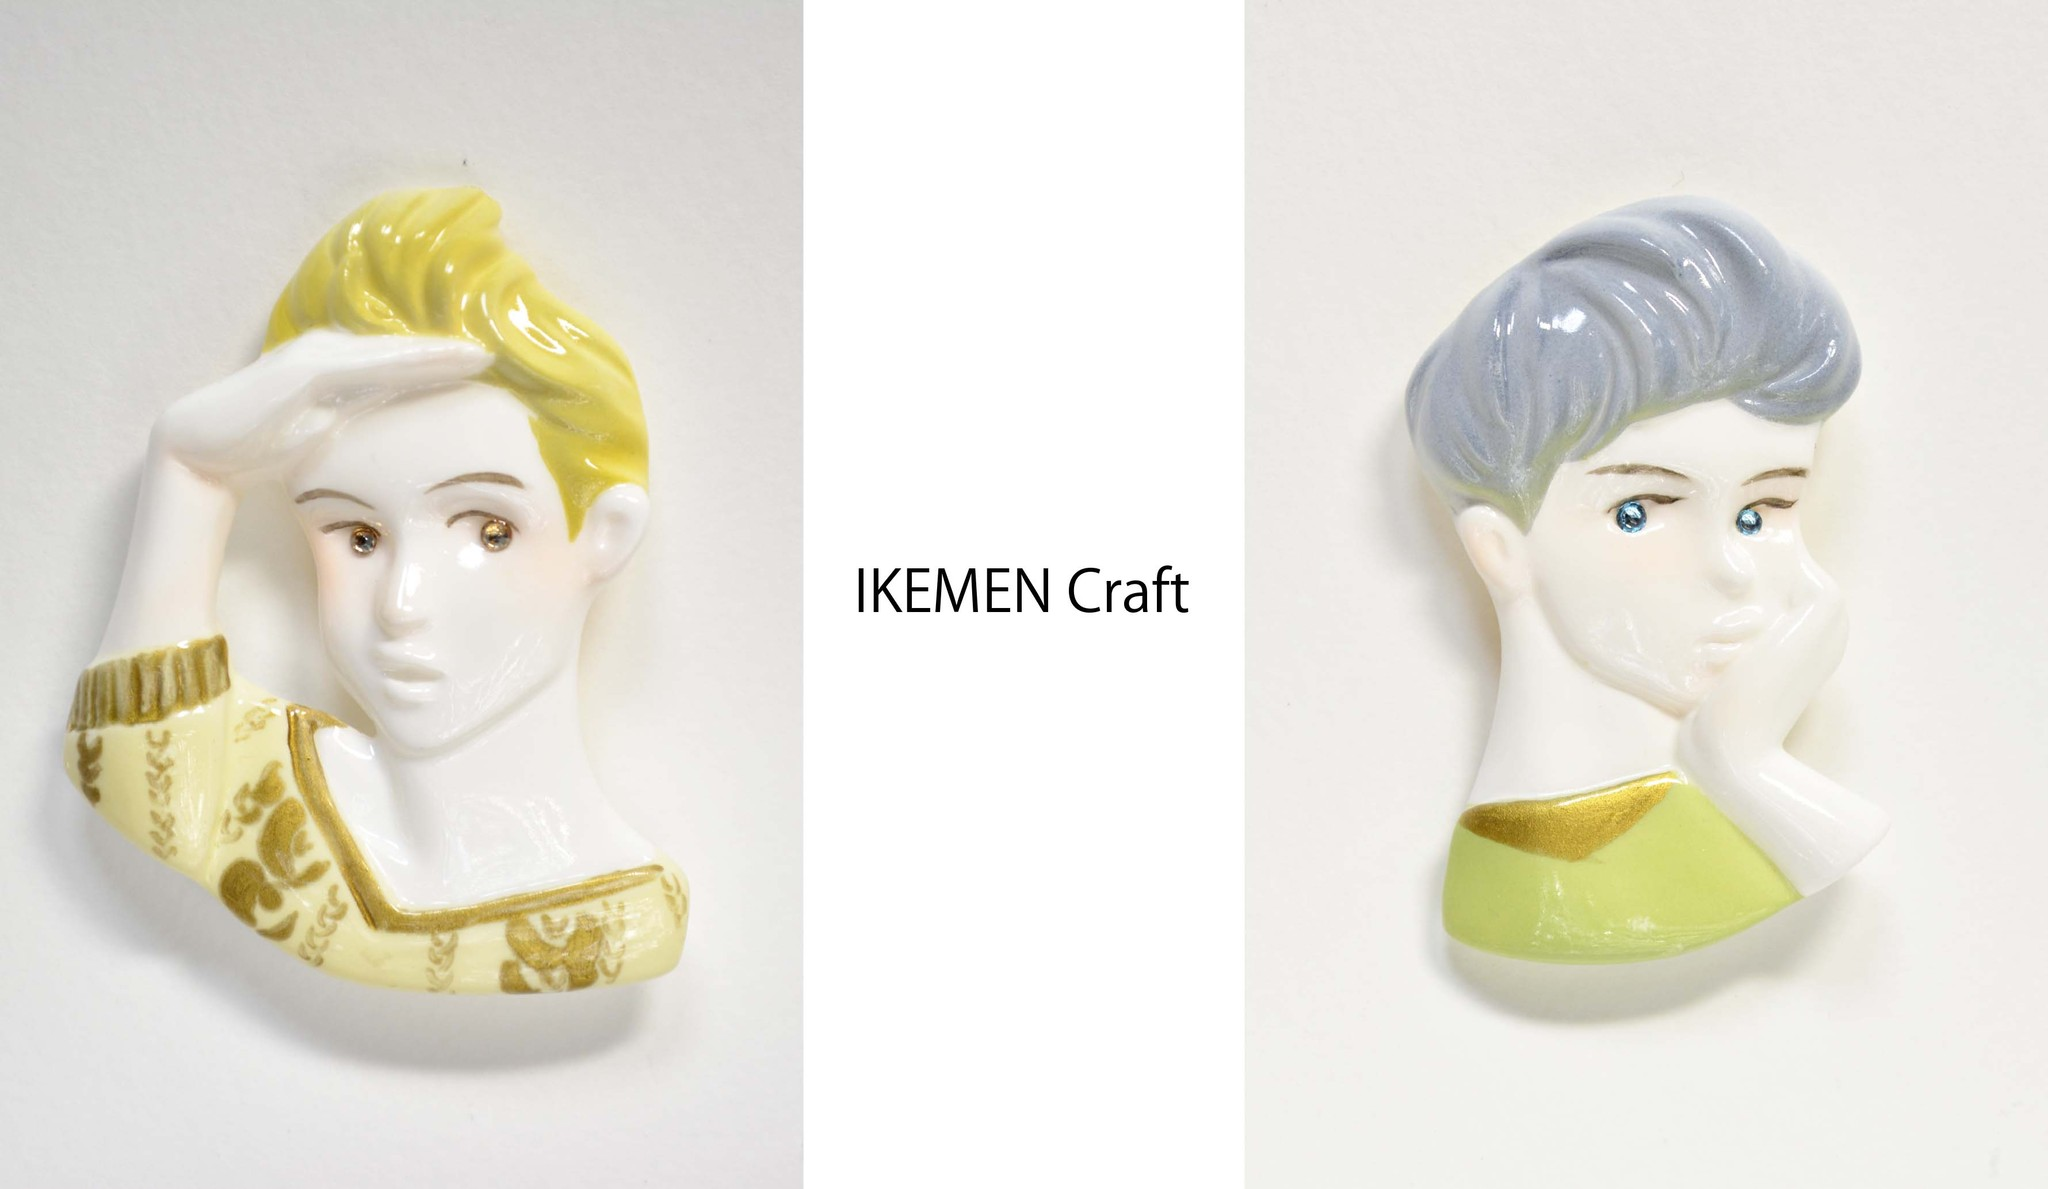 IKEMEN Craft